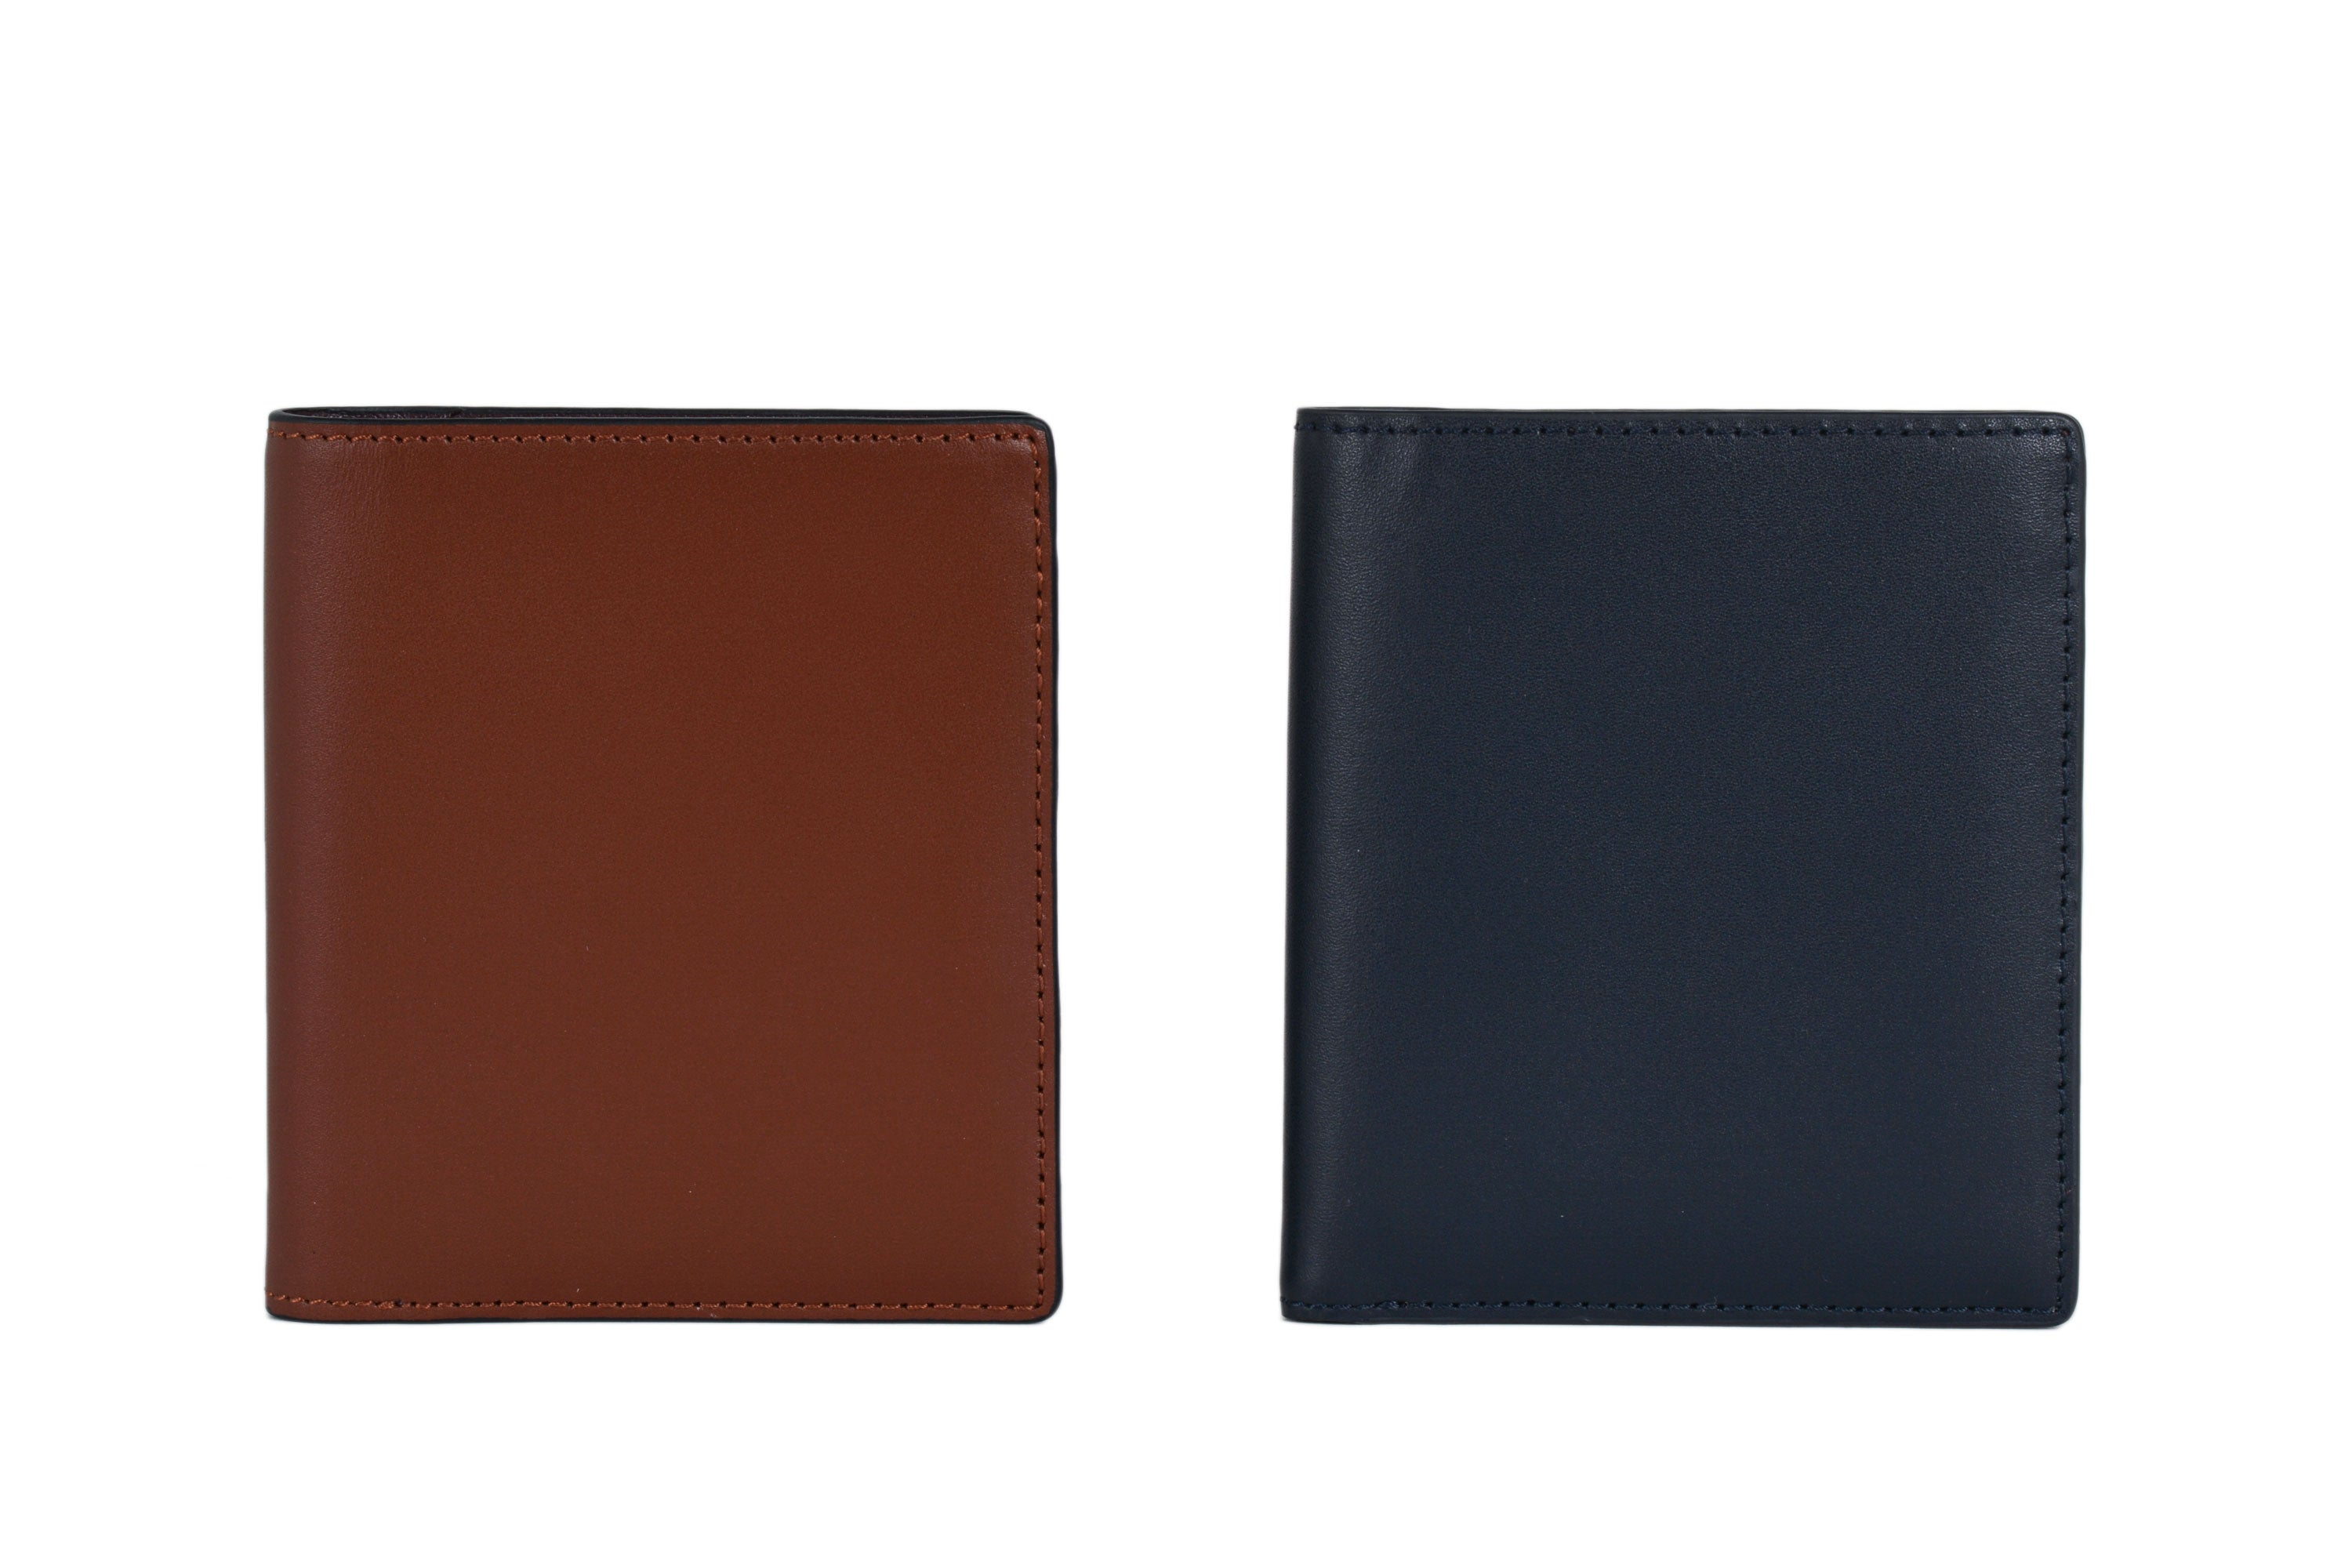 Specter Bifold Wallet (Paired Bundle) | Slim Leather Wallet